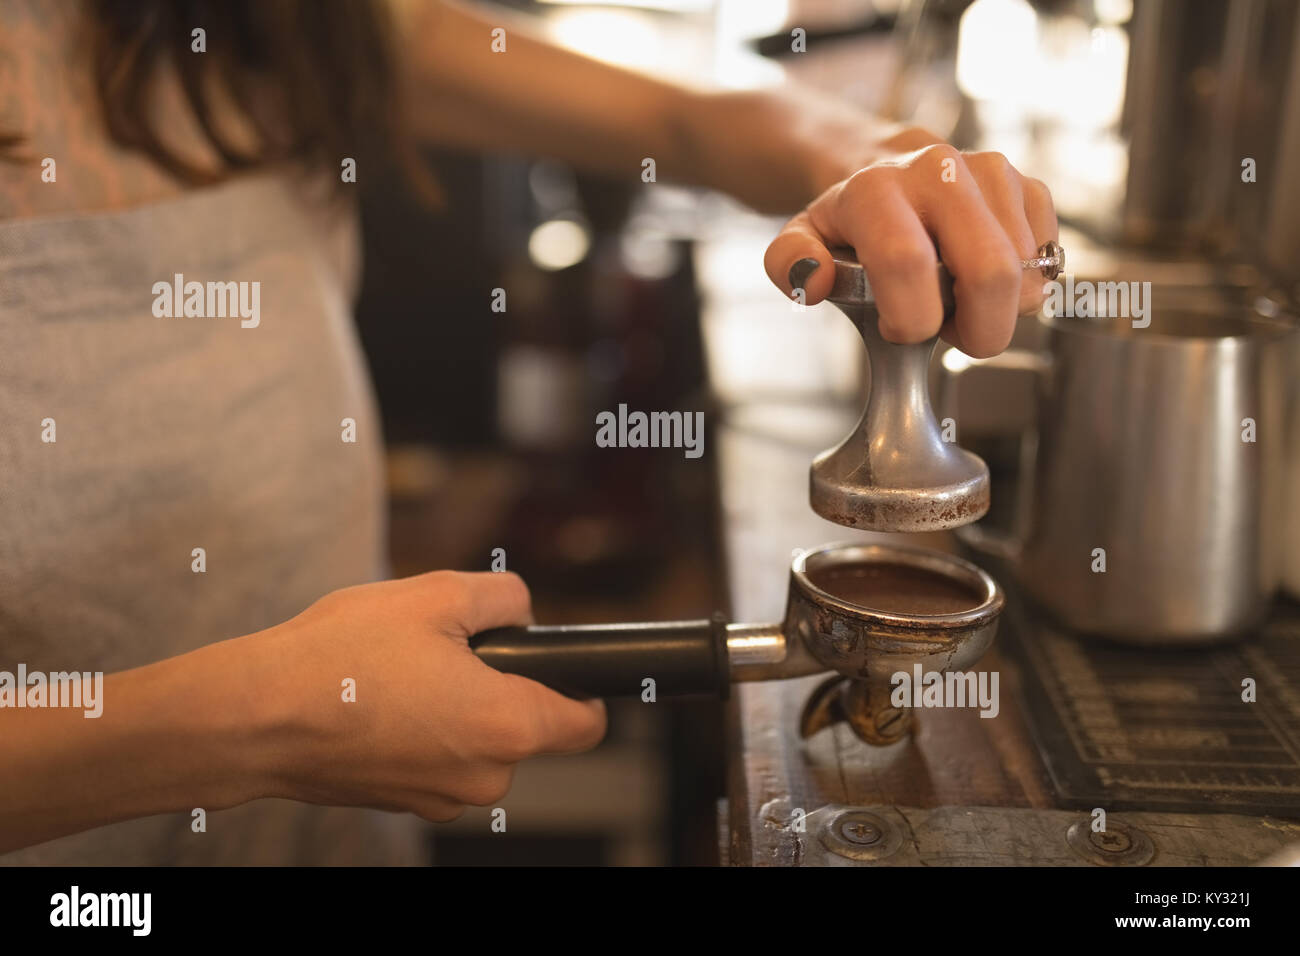 Barista using a tamper to press ground coffee into a portafilter - Stock Image